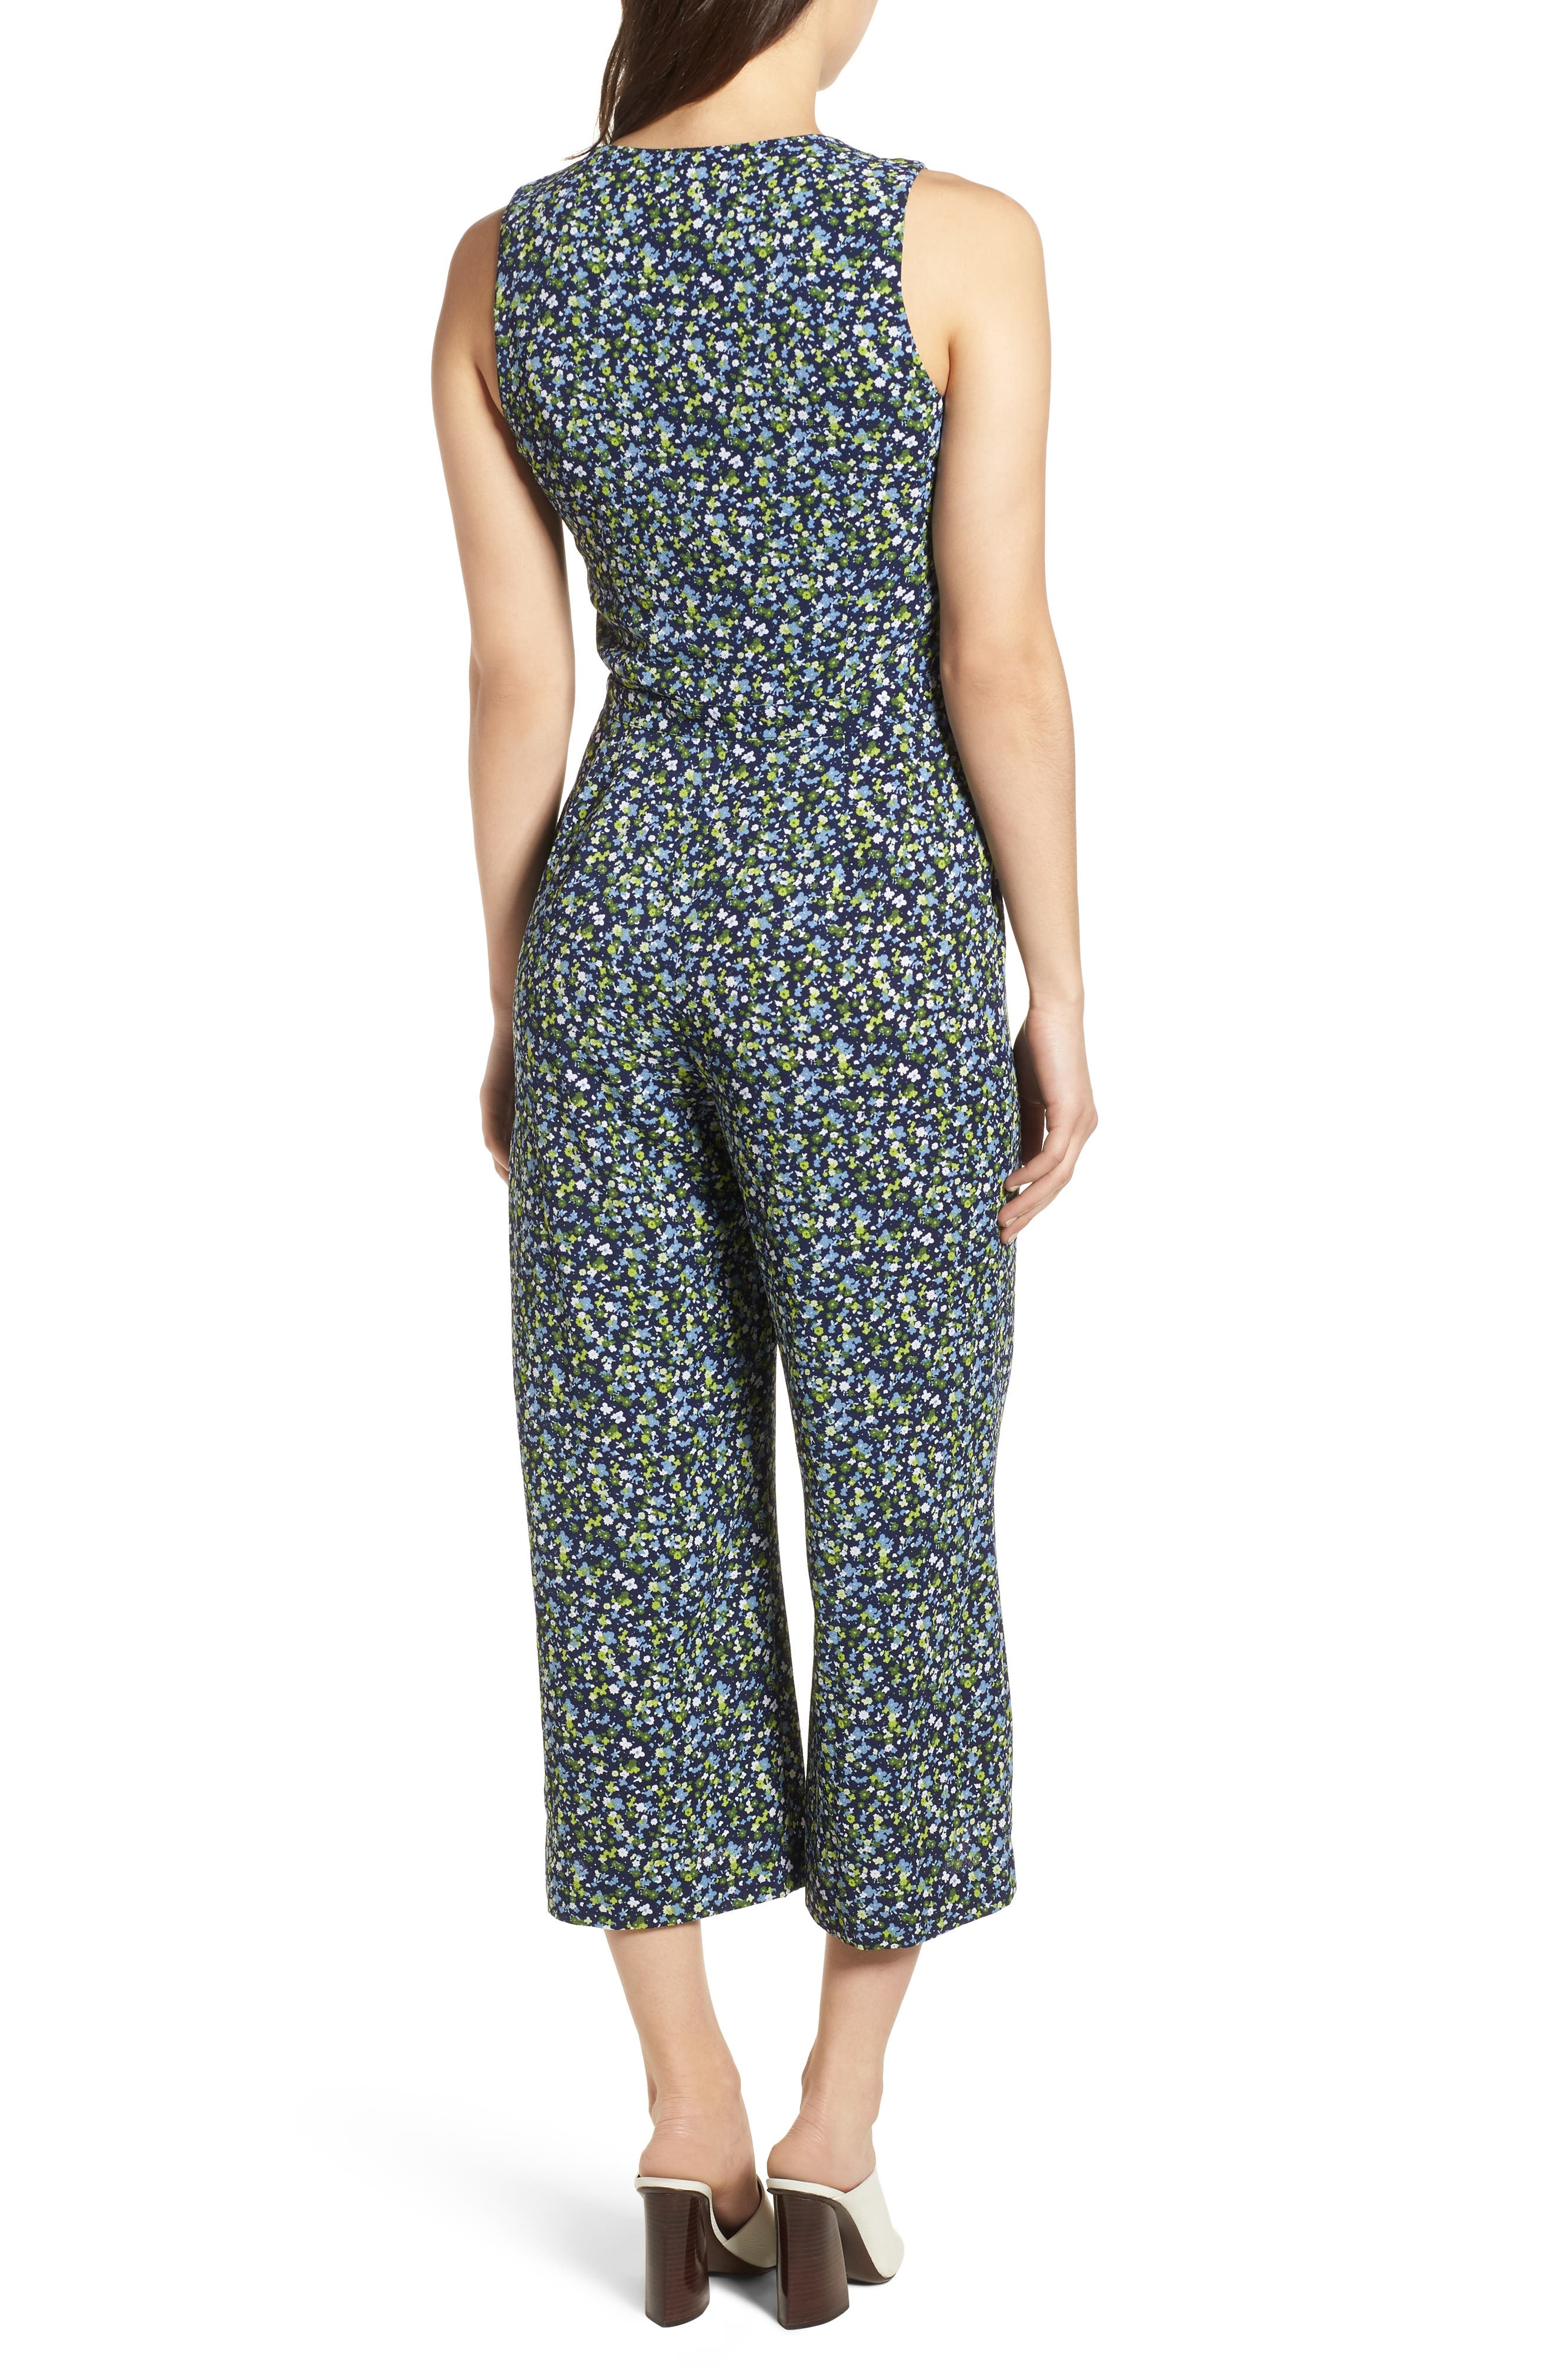 Wildflower Print Jumpsuit,                             Alternate thumbnail 2, color,                             362